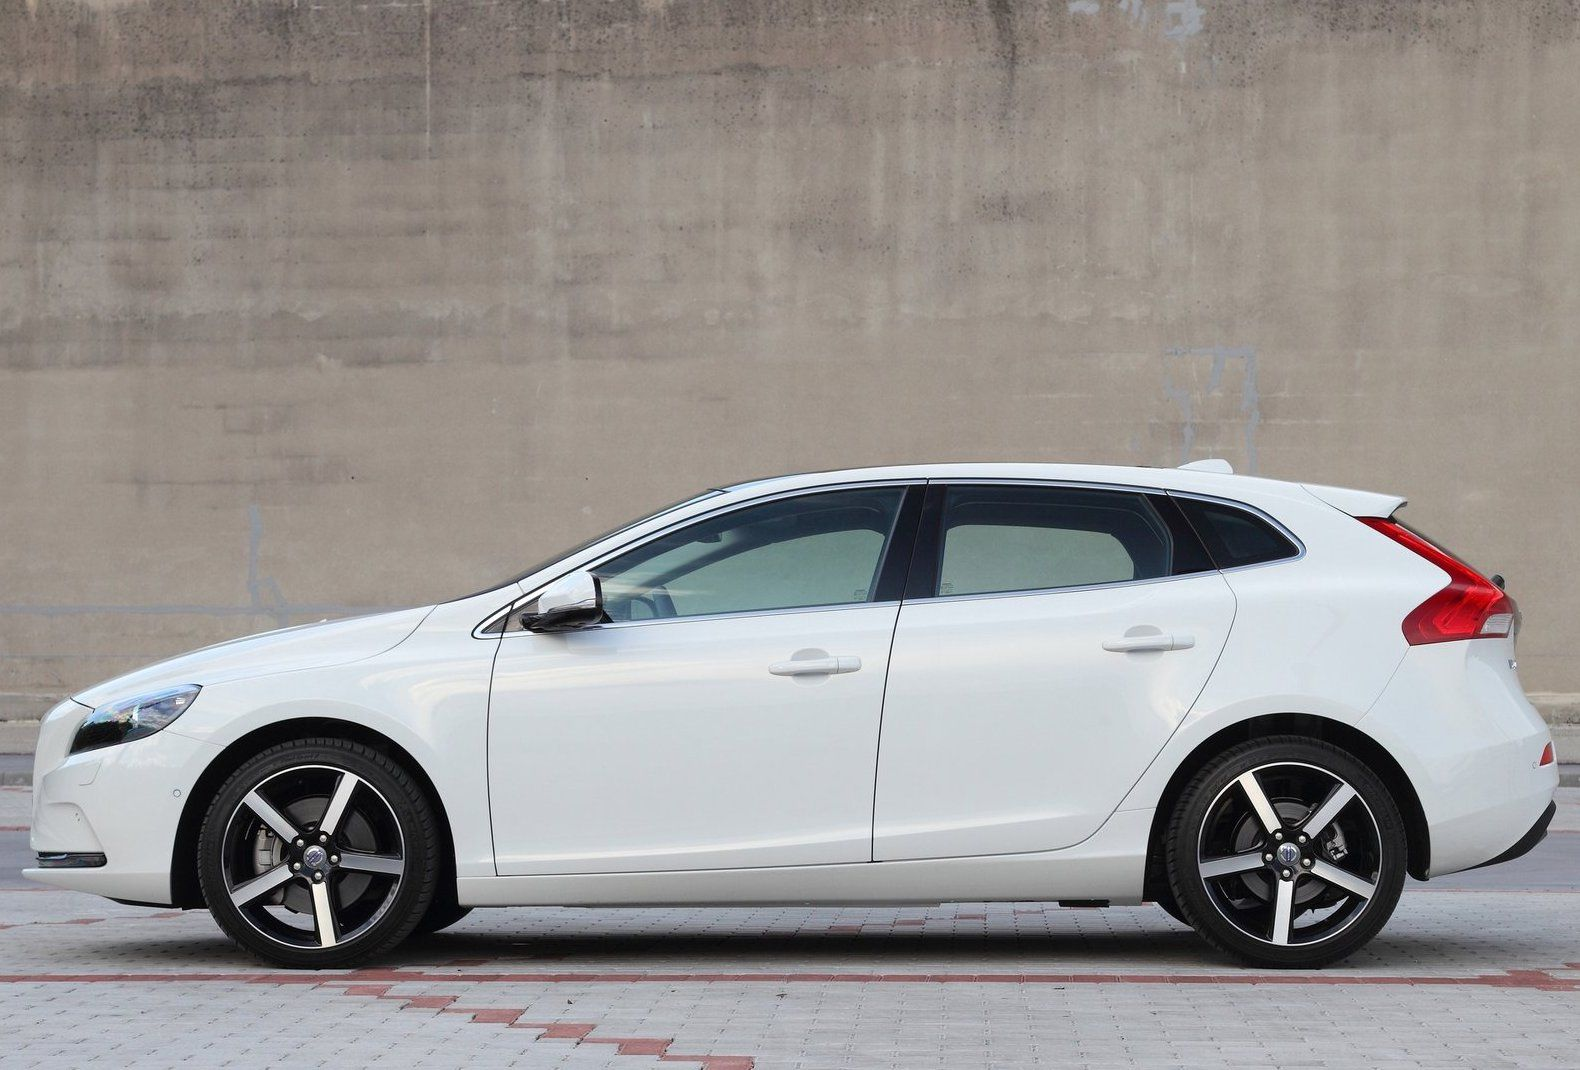 2013 Volvo V40 side angel - New Car Reviews, Car Modified, Spare ...